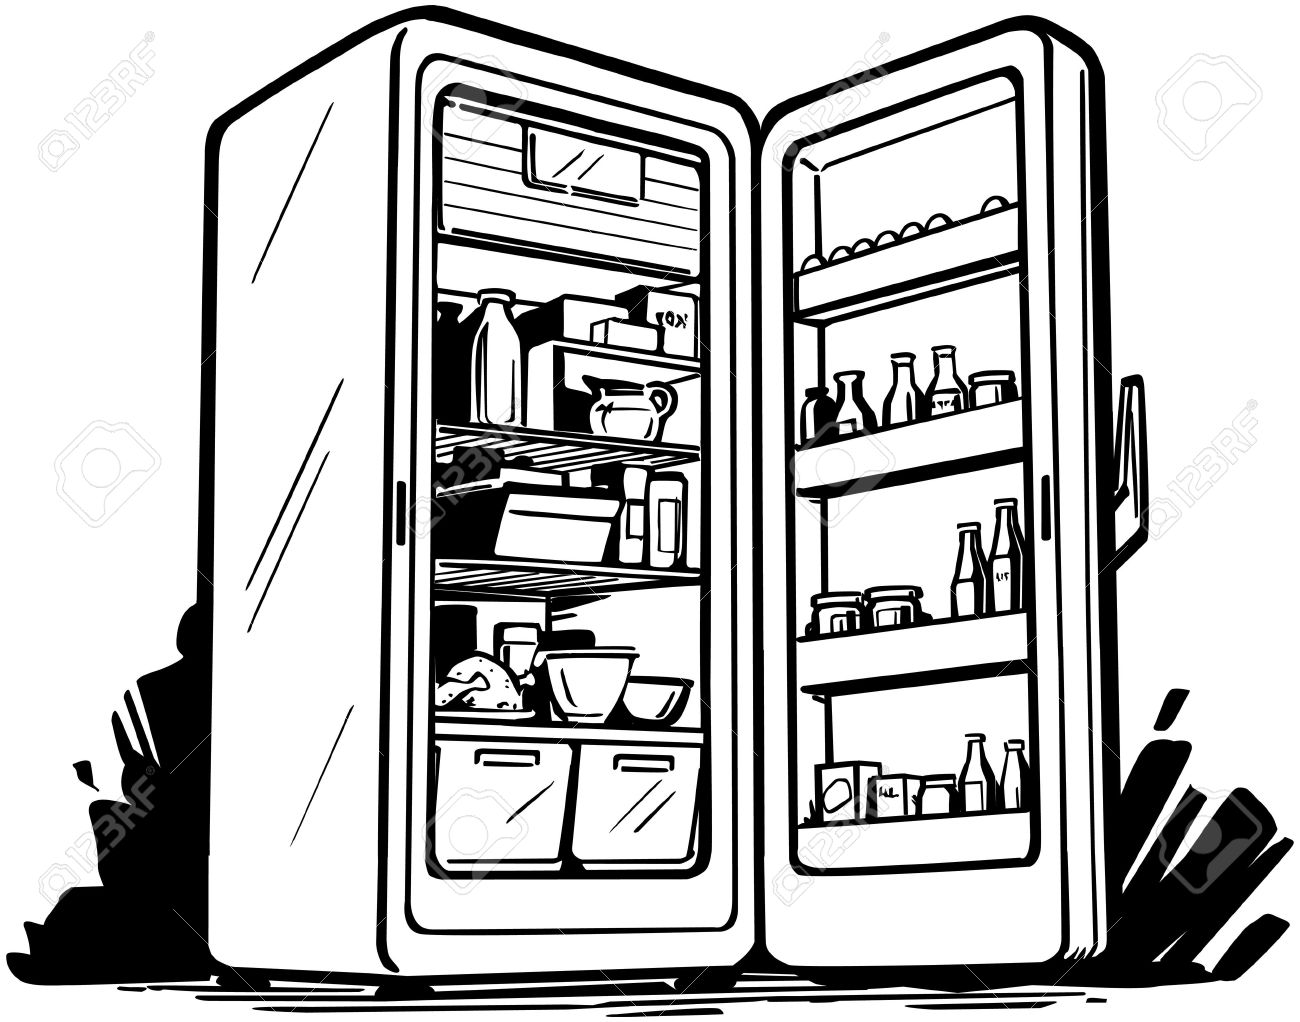 Open Refrigerator Clipart Black And White.